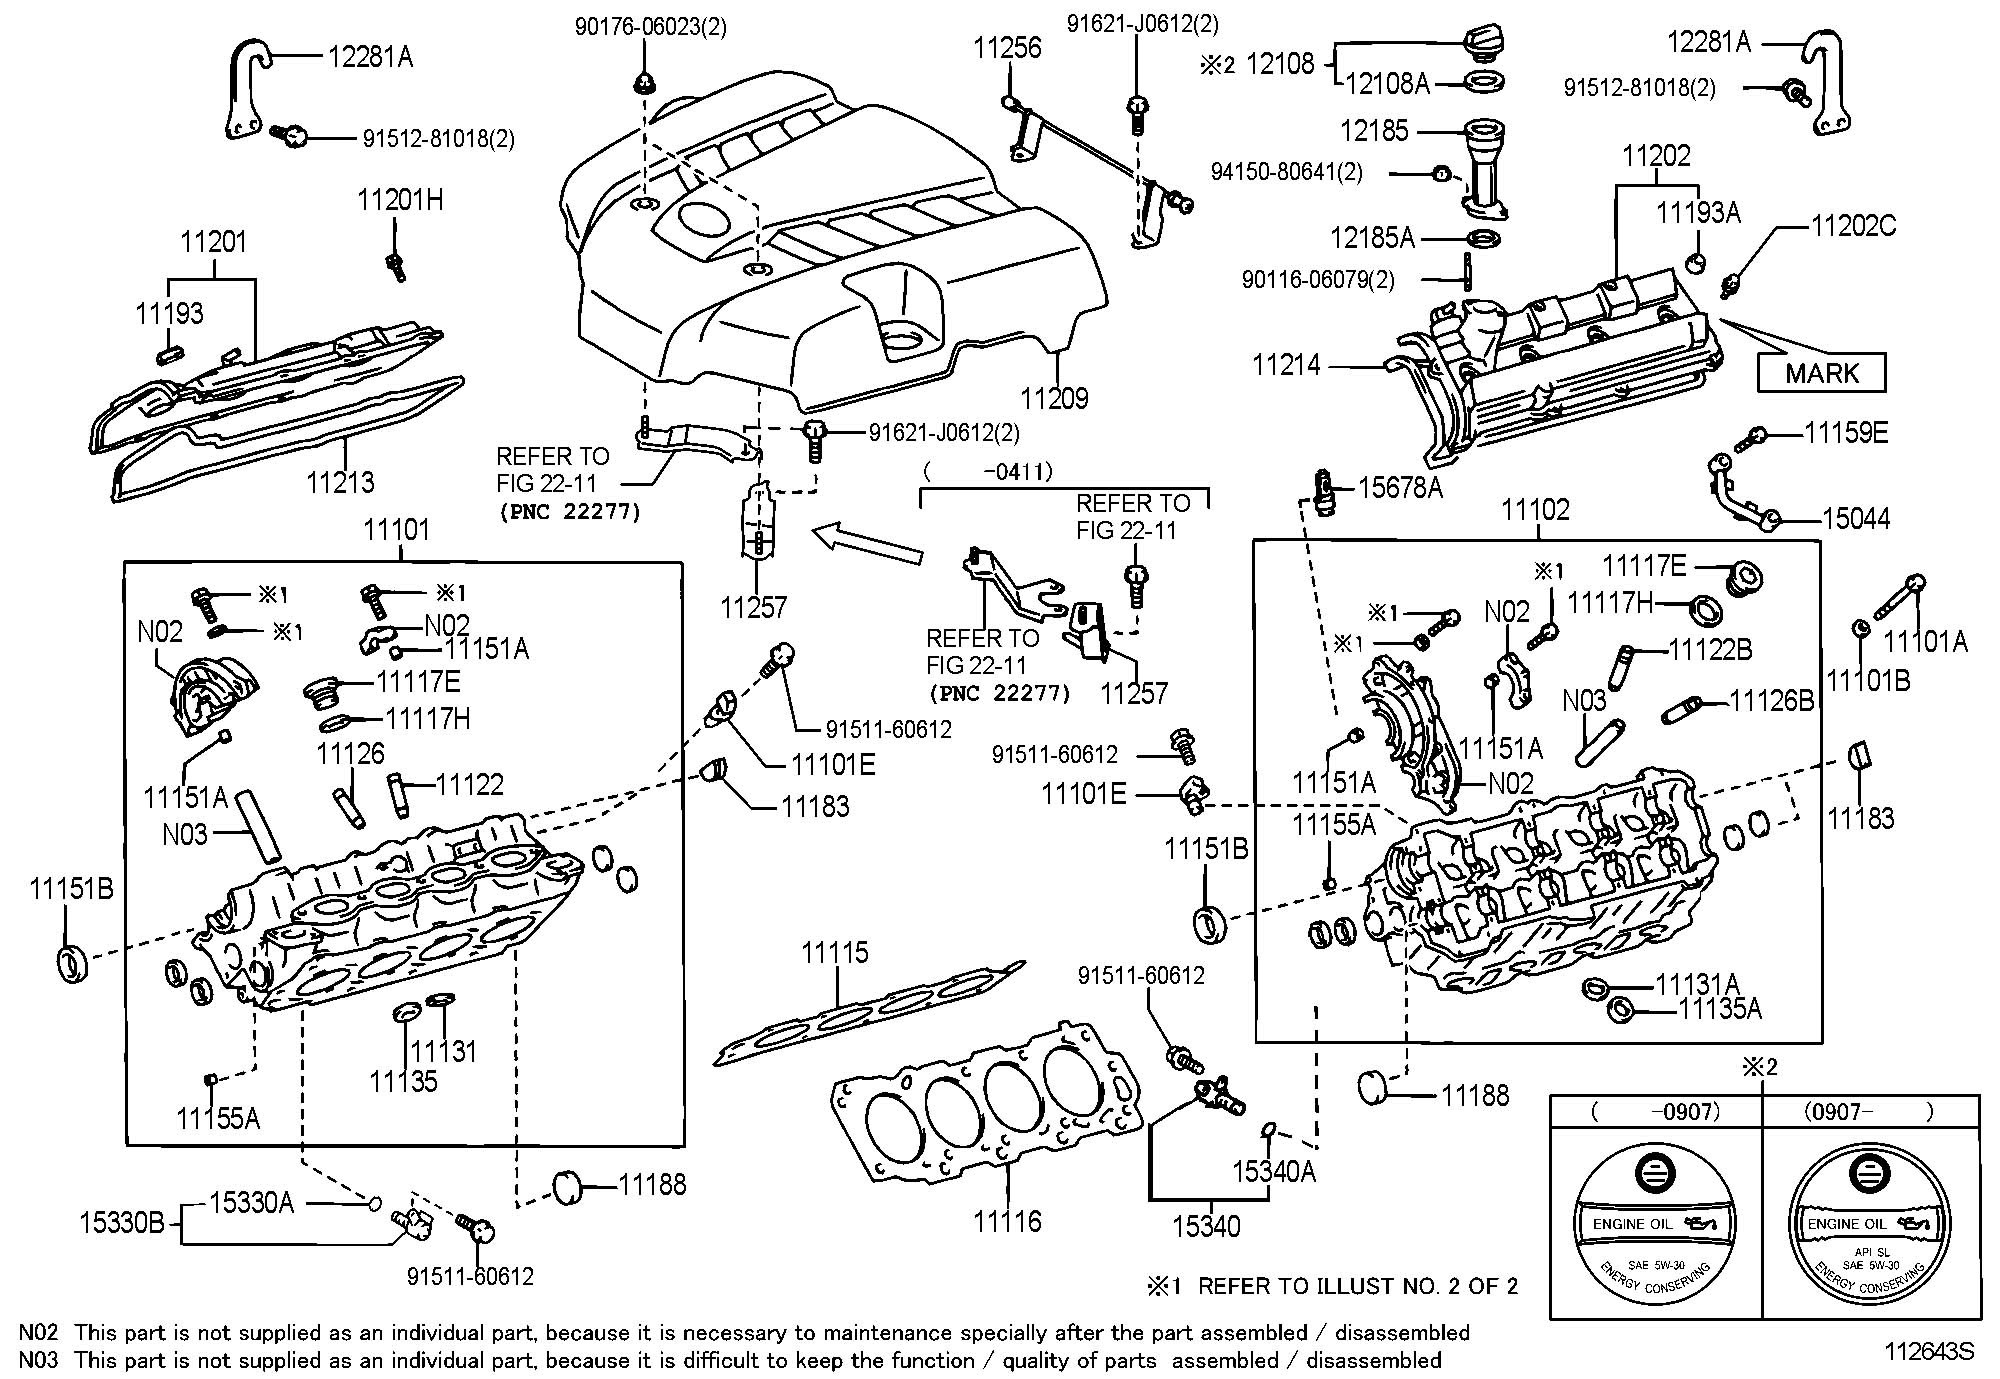 1999 lexus rx300 rear hatch parts diagram  u2022 wiring diagram